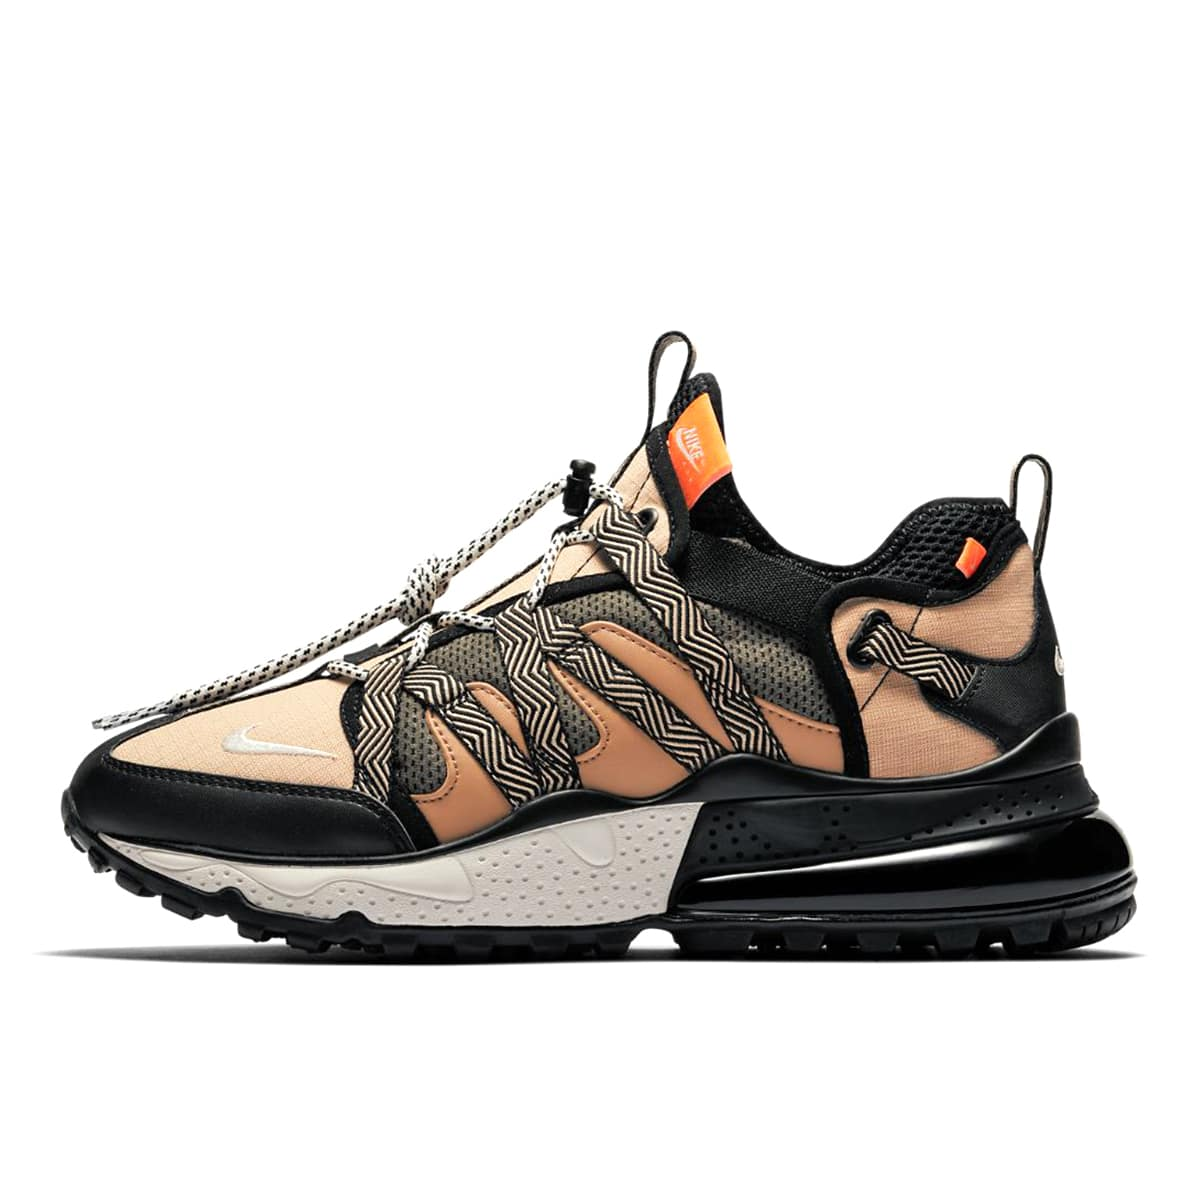 Nike Air Max 270 Bowfin Sneakers